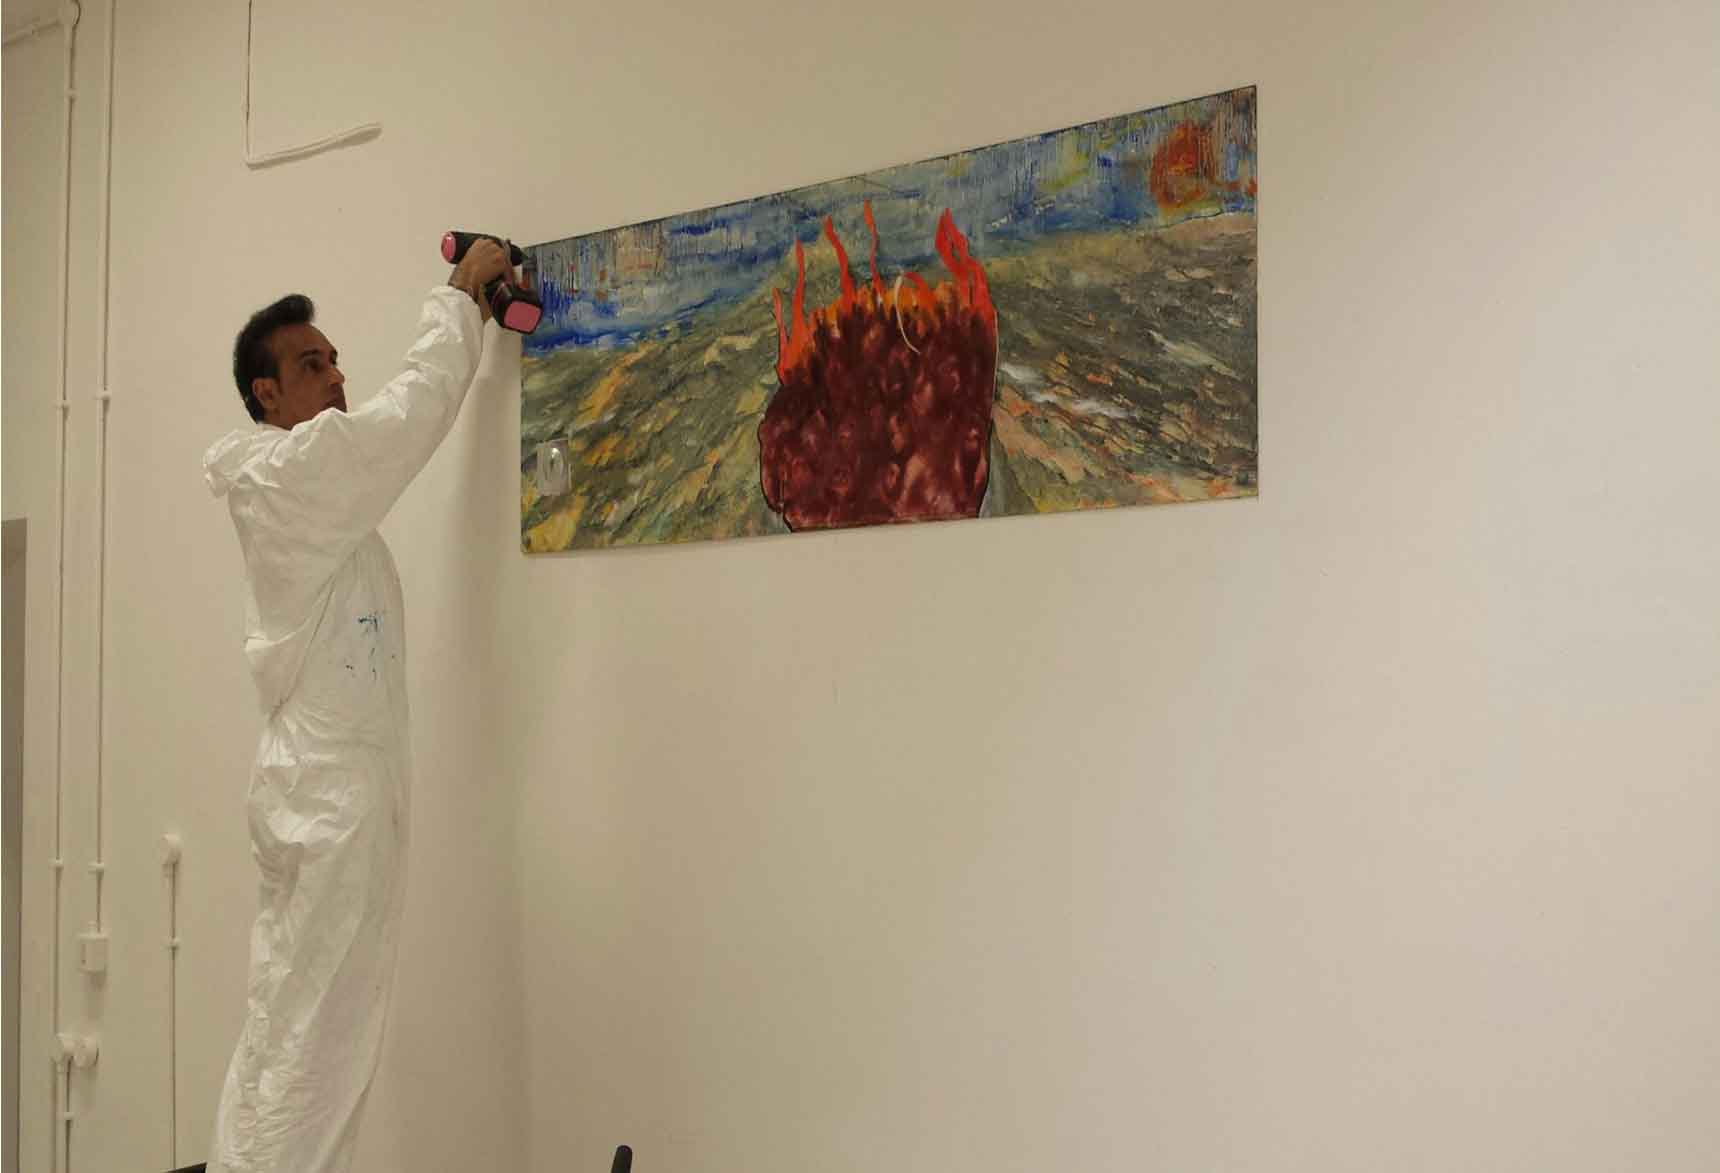 Installing at exhibition